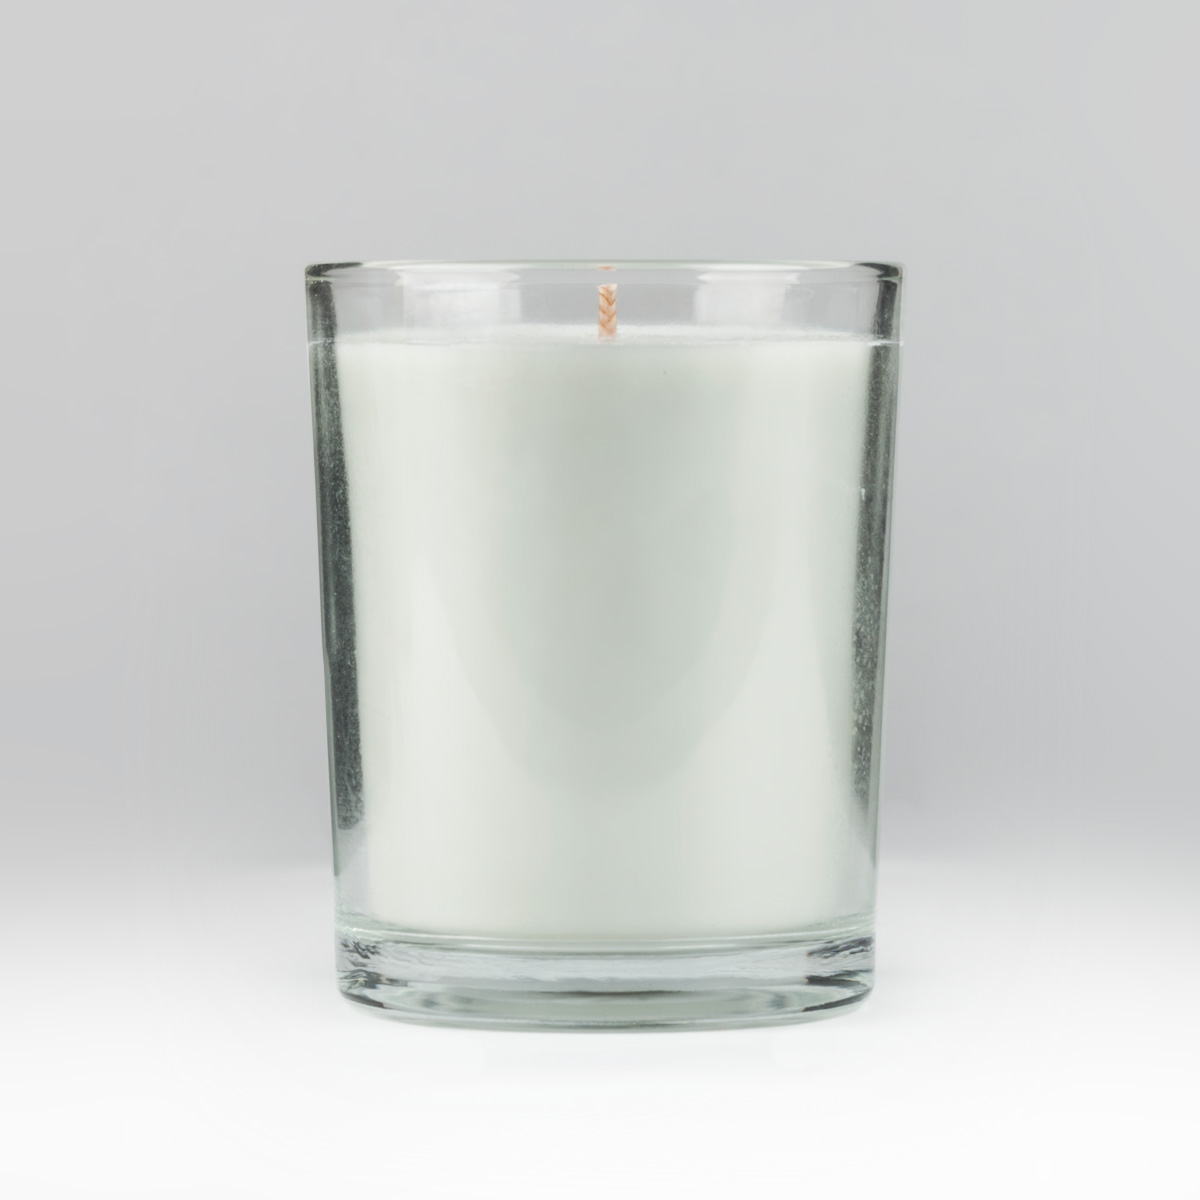 La Luz Wallpaper Collection 10 Oz Glass Candle Marigold Scent